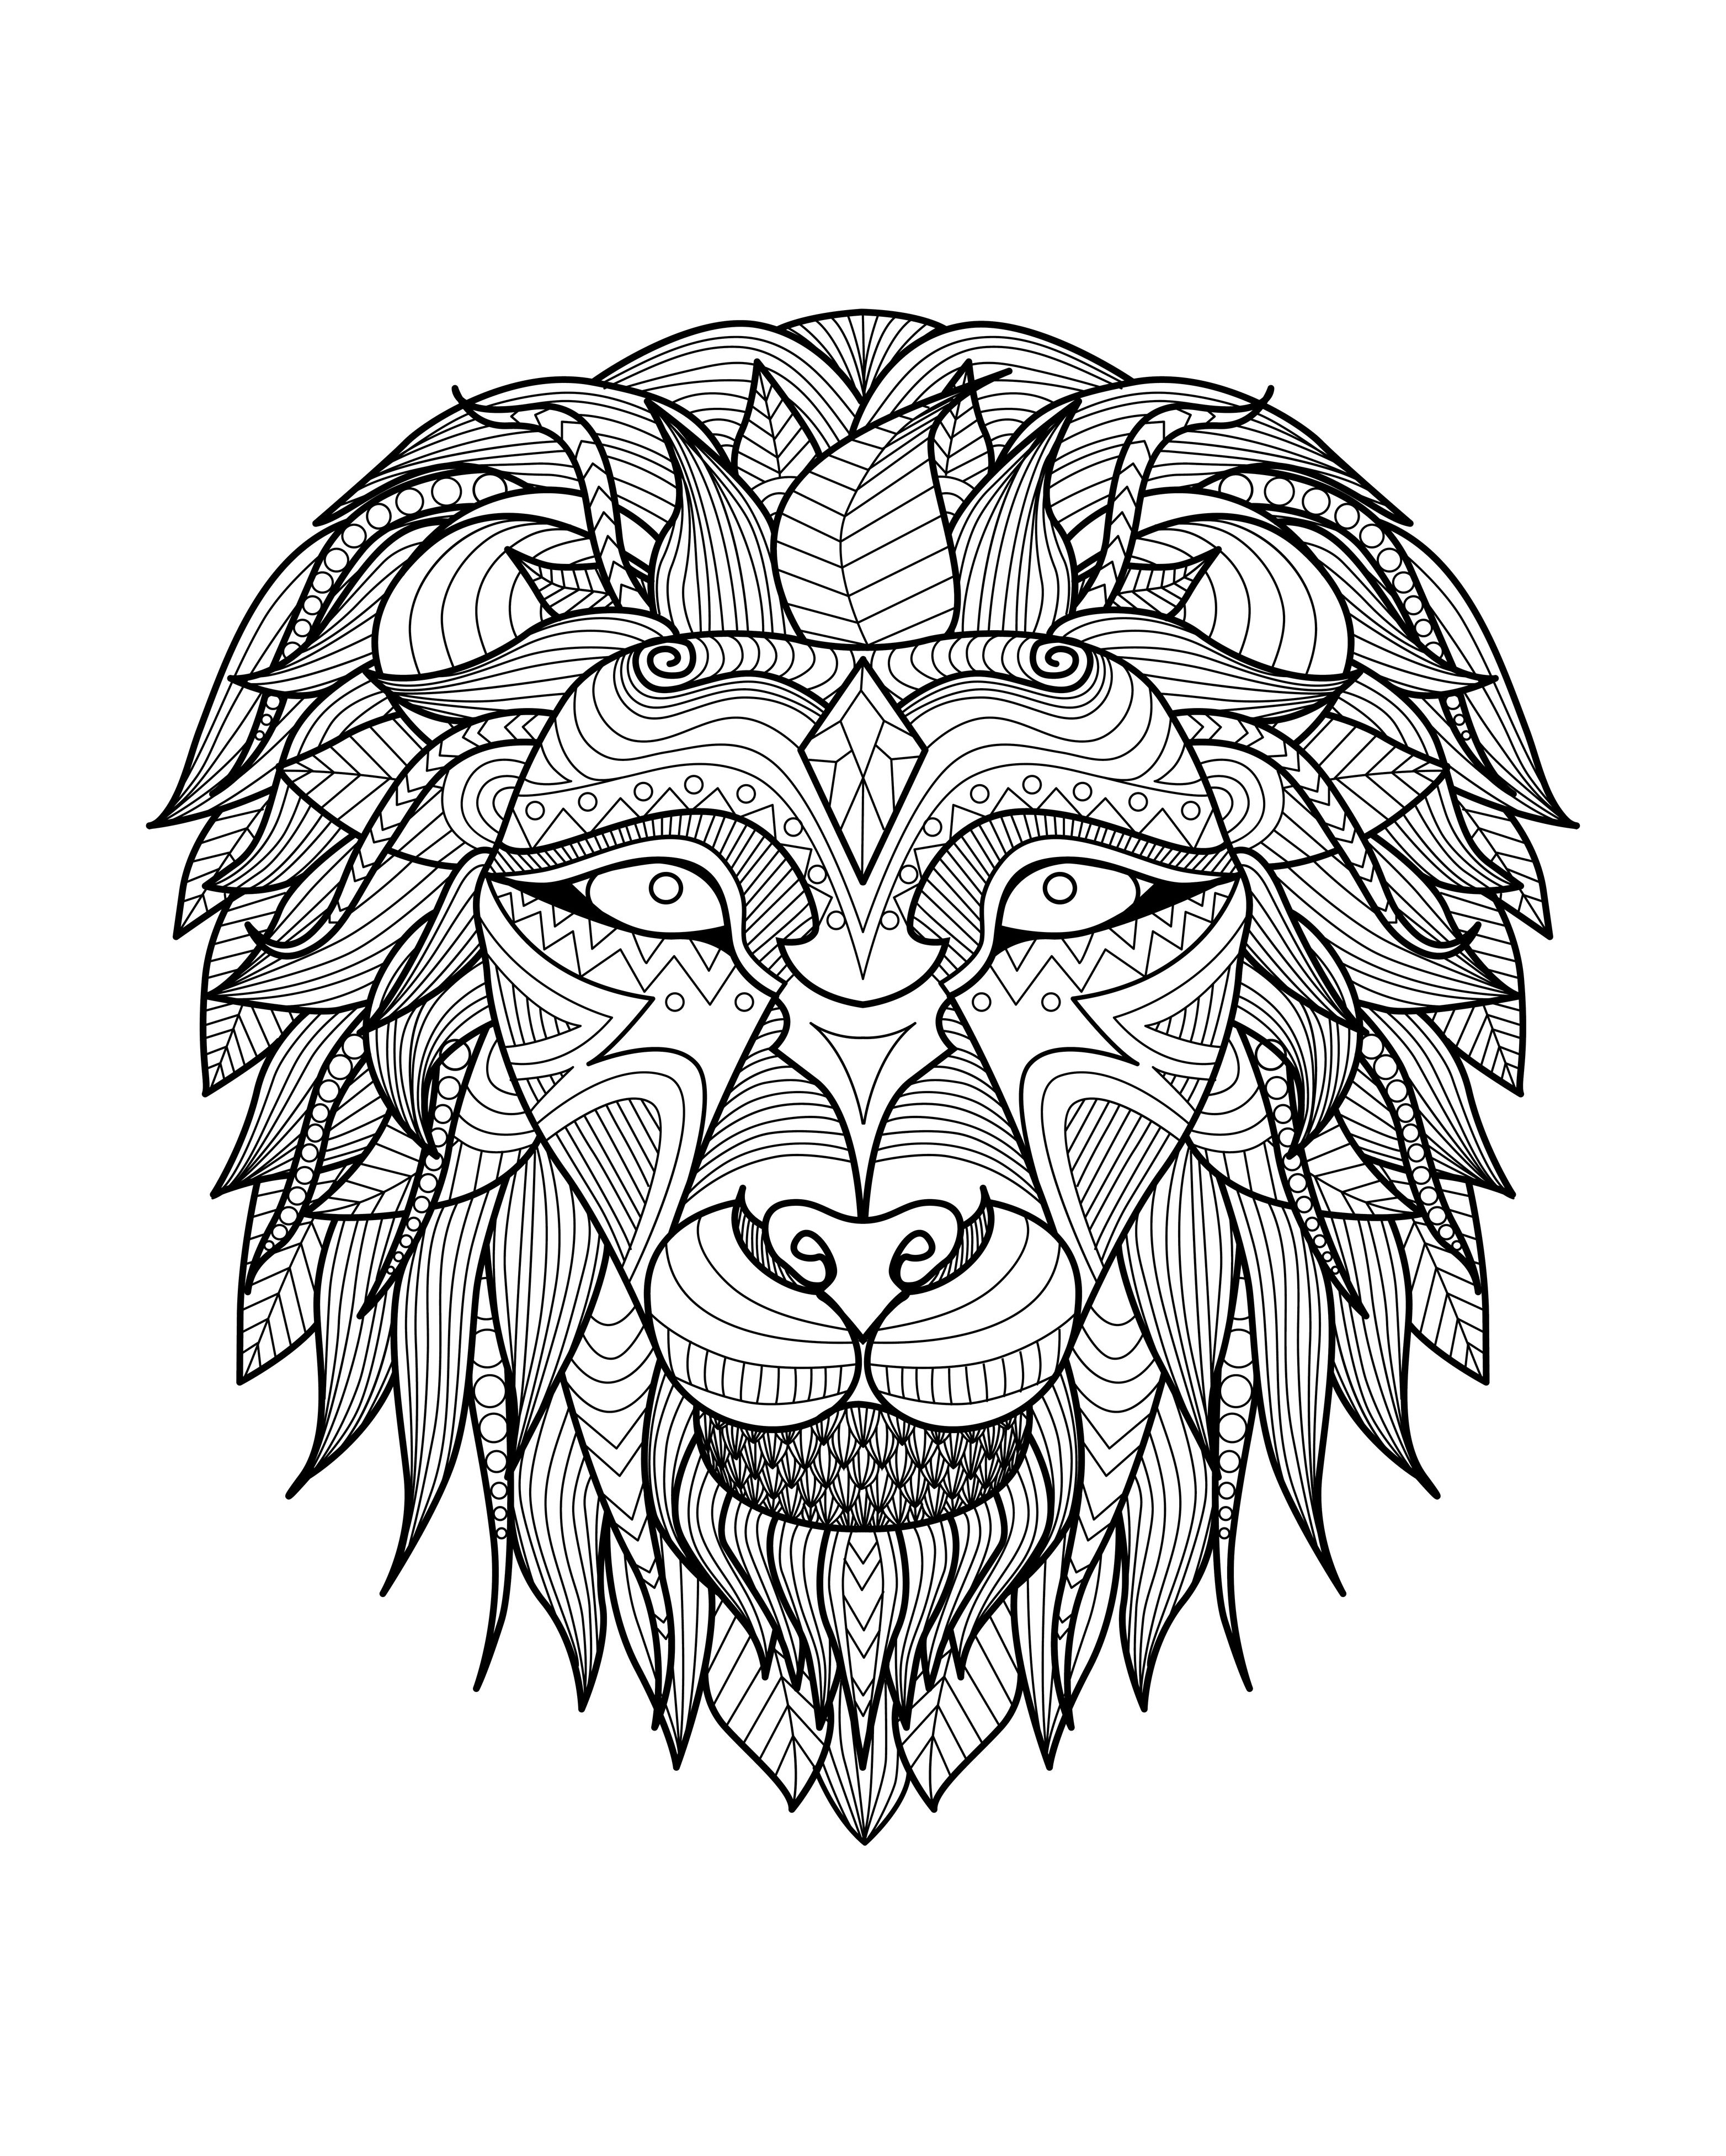 Lion head 2  Animals  Coloring pages for adults  JustColor